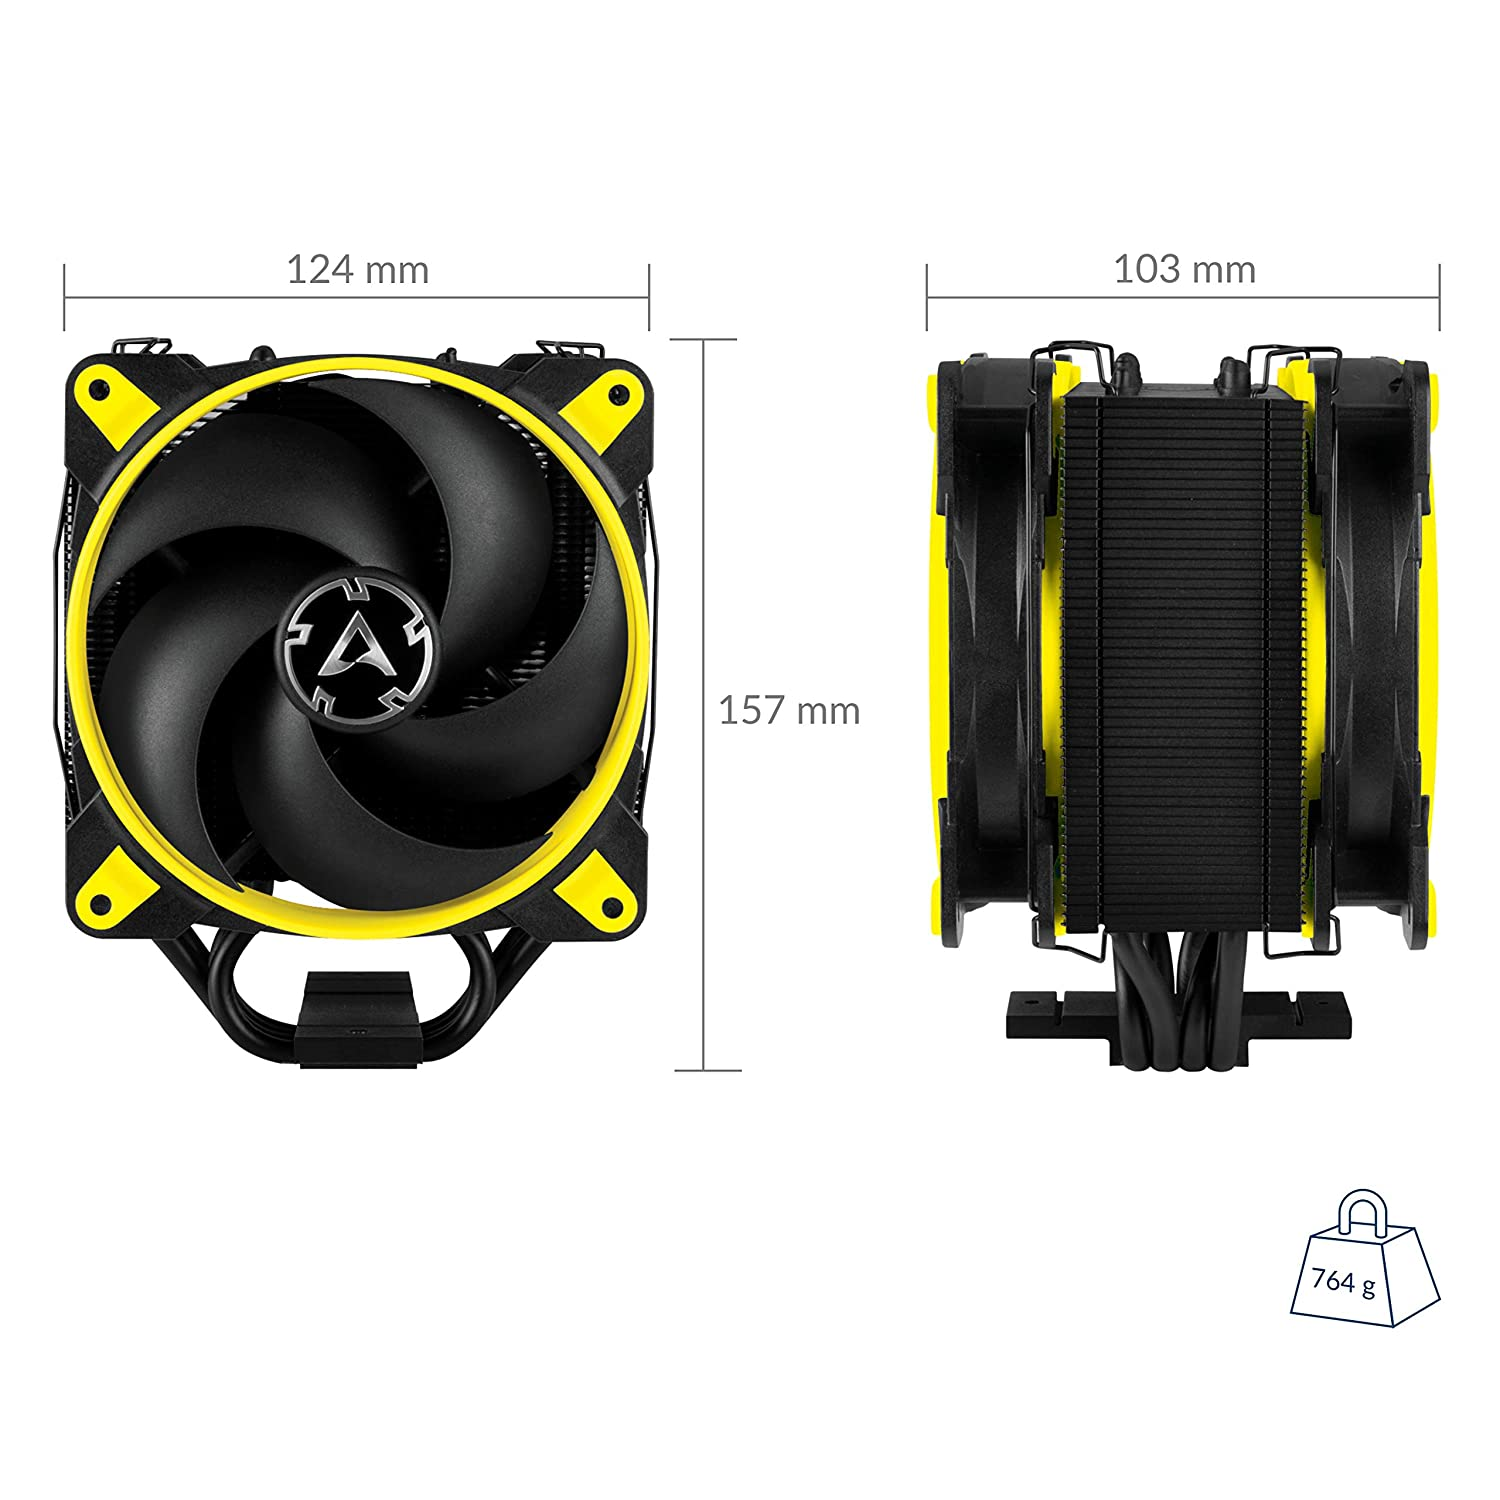 Yellow Tower CPU Cooler with Push-Pull Configuration I Silent 3-Phase-Motor and wide range of regulation 200 to 1800 RPM I Includes 2 low noise 120 mm fans ARCTIC Freezer 33 eSports Edition